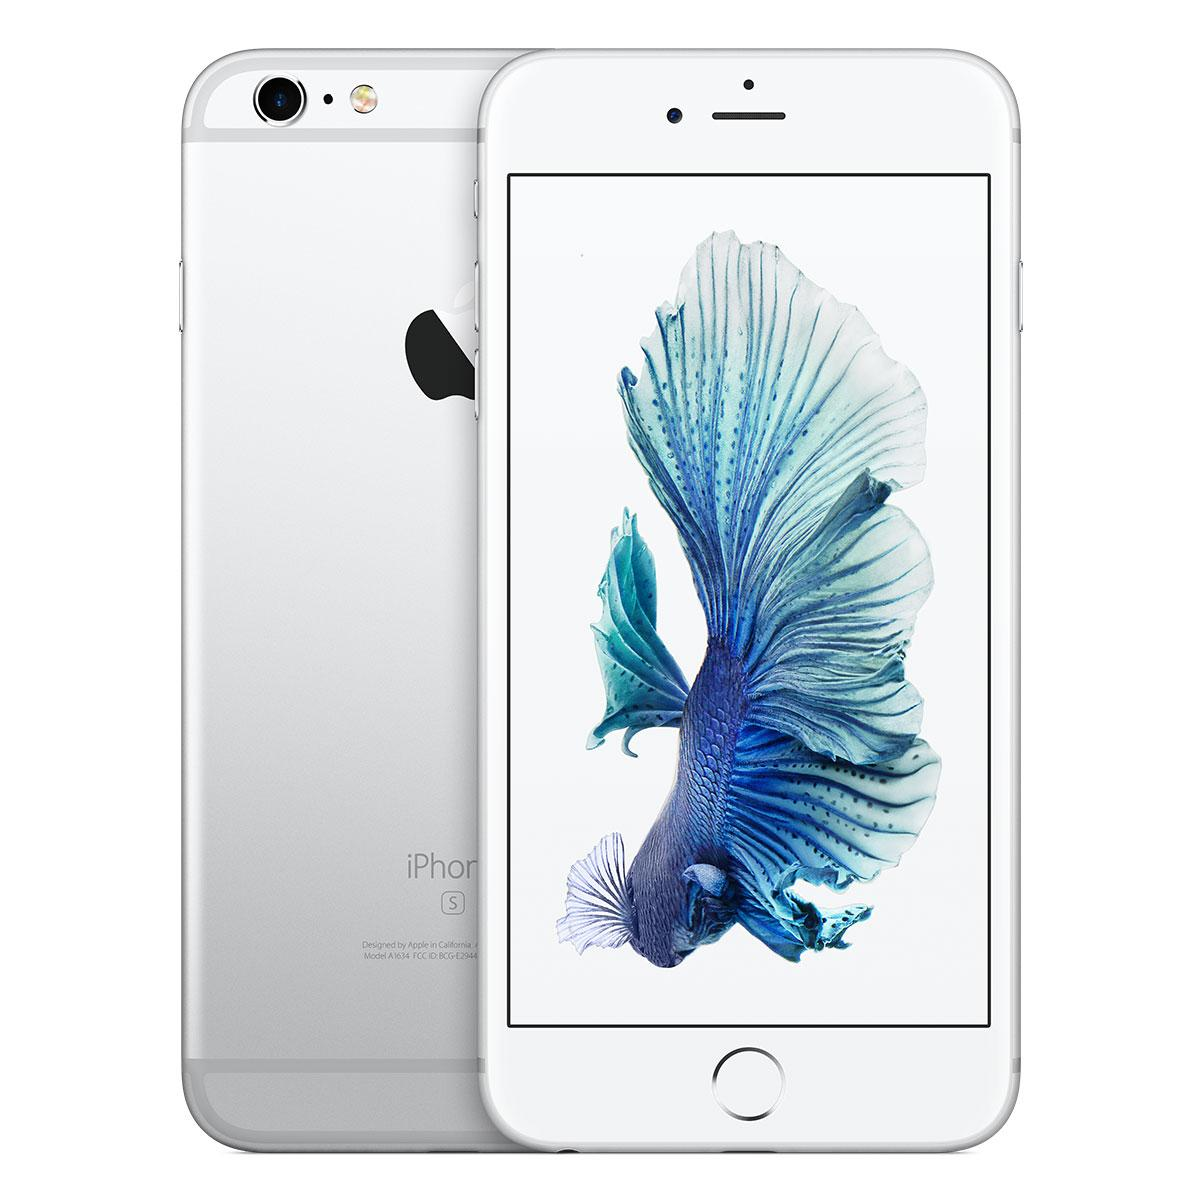 iPhone 6s Plus 16GB - Silber - Ohne Vertrag